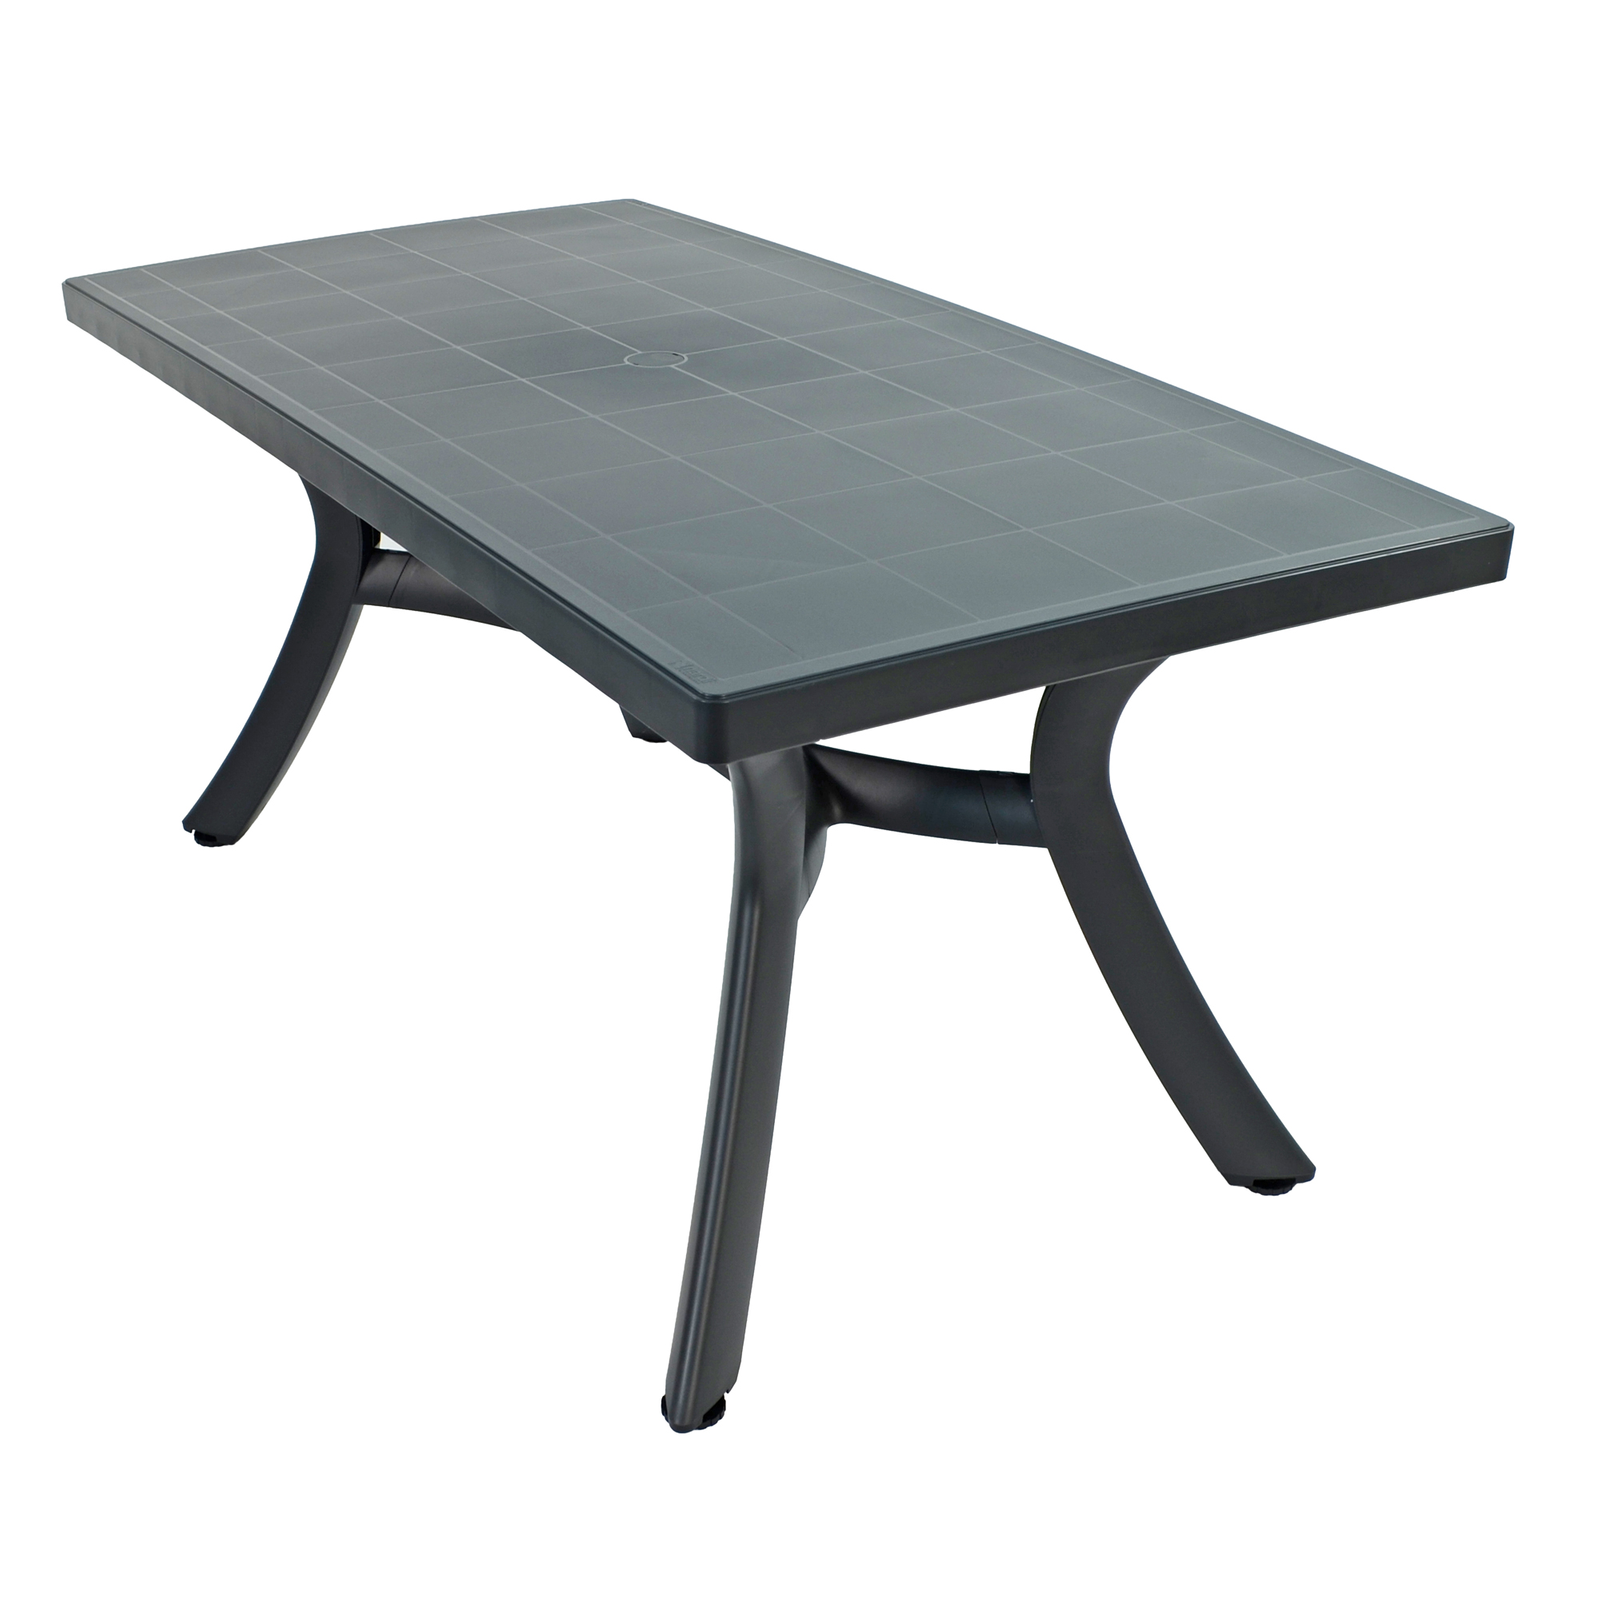 Nardi Toscana 160cm Rectangular Dining Table Anthracite